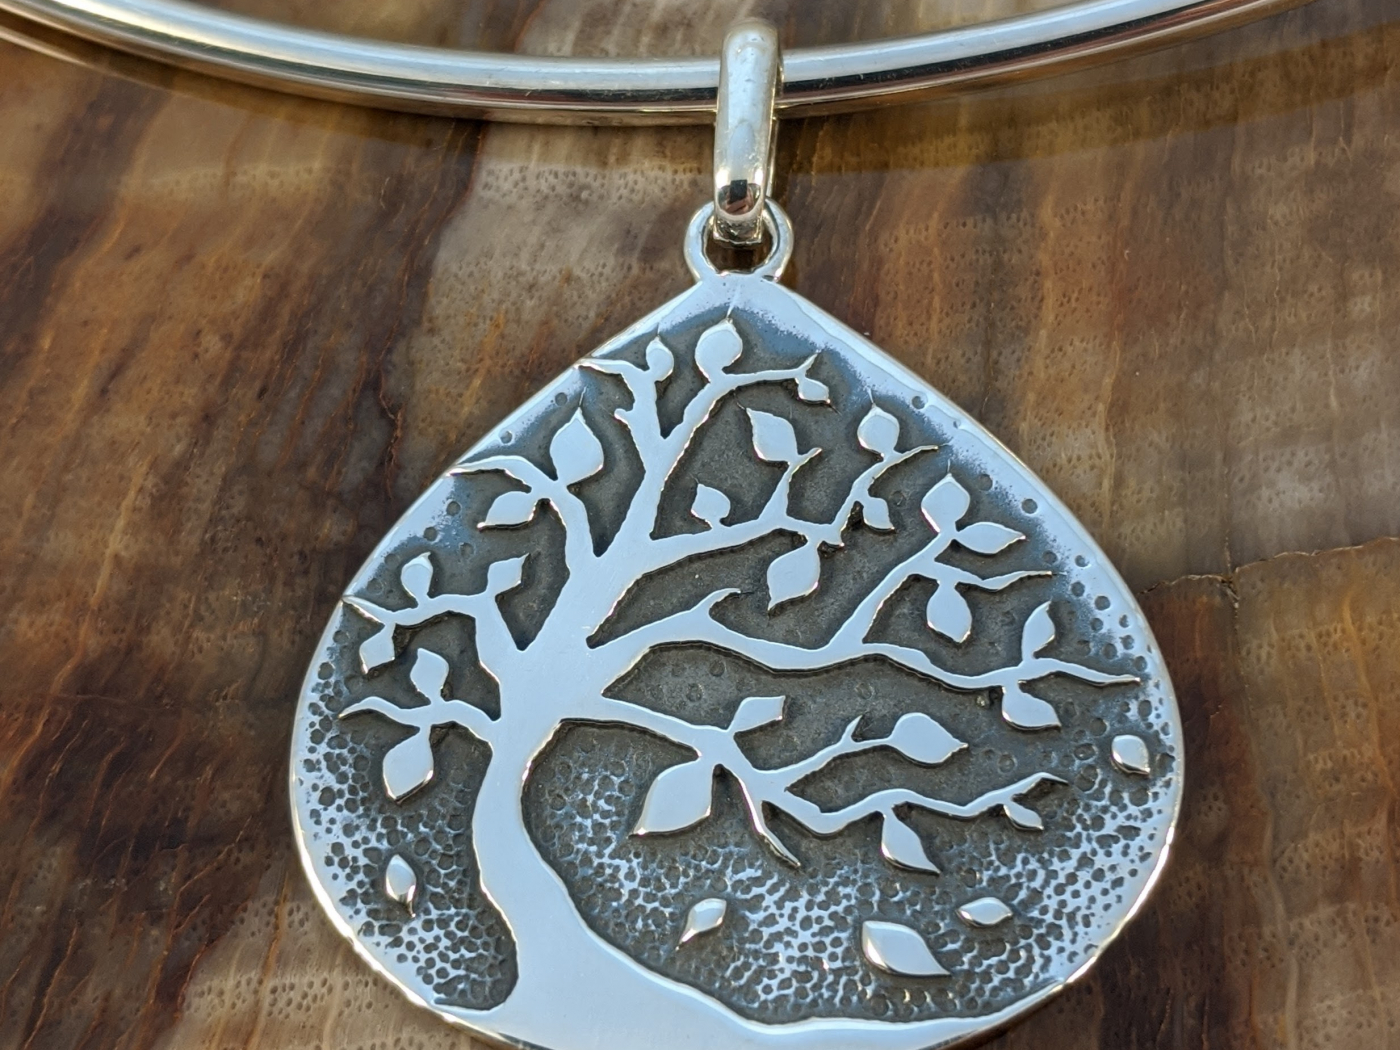 DeLong Studio Silver Jewellery is a business for sale in BC.